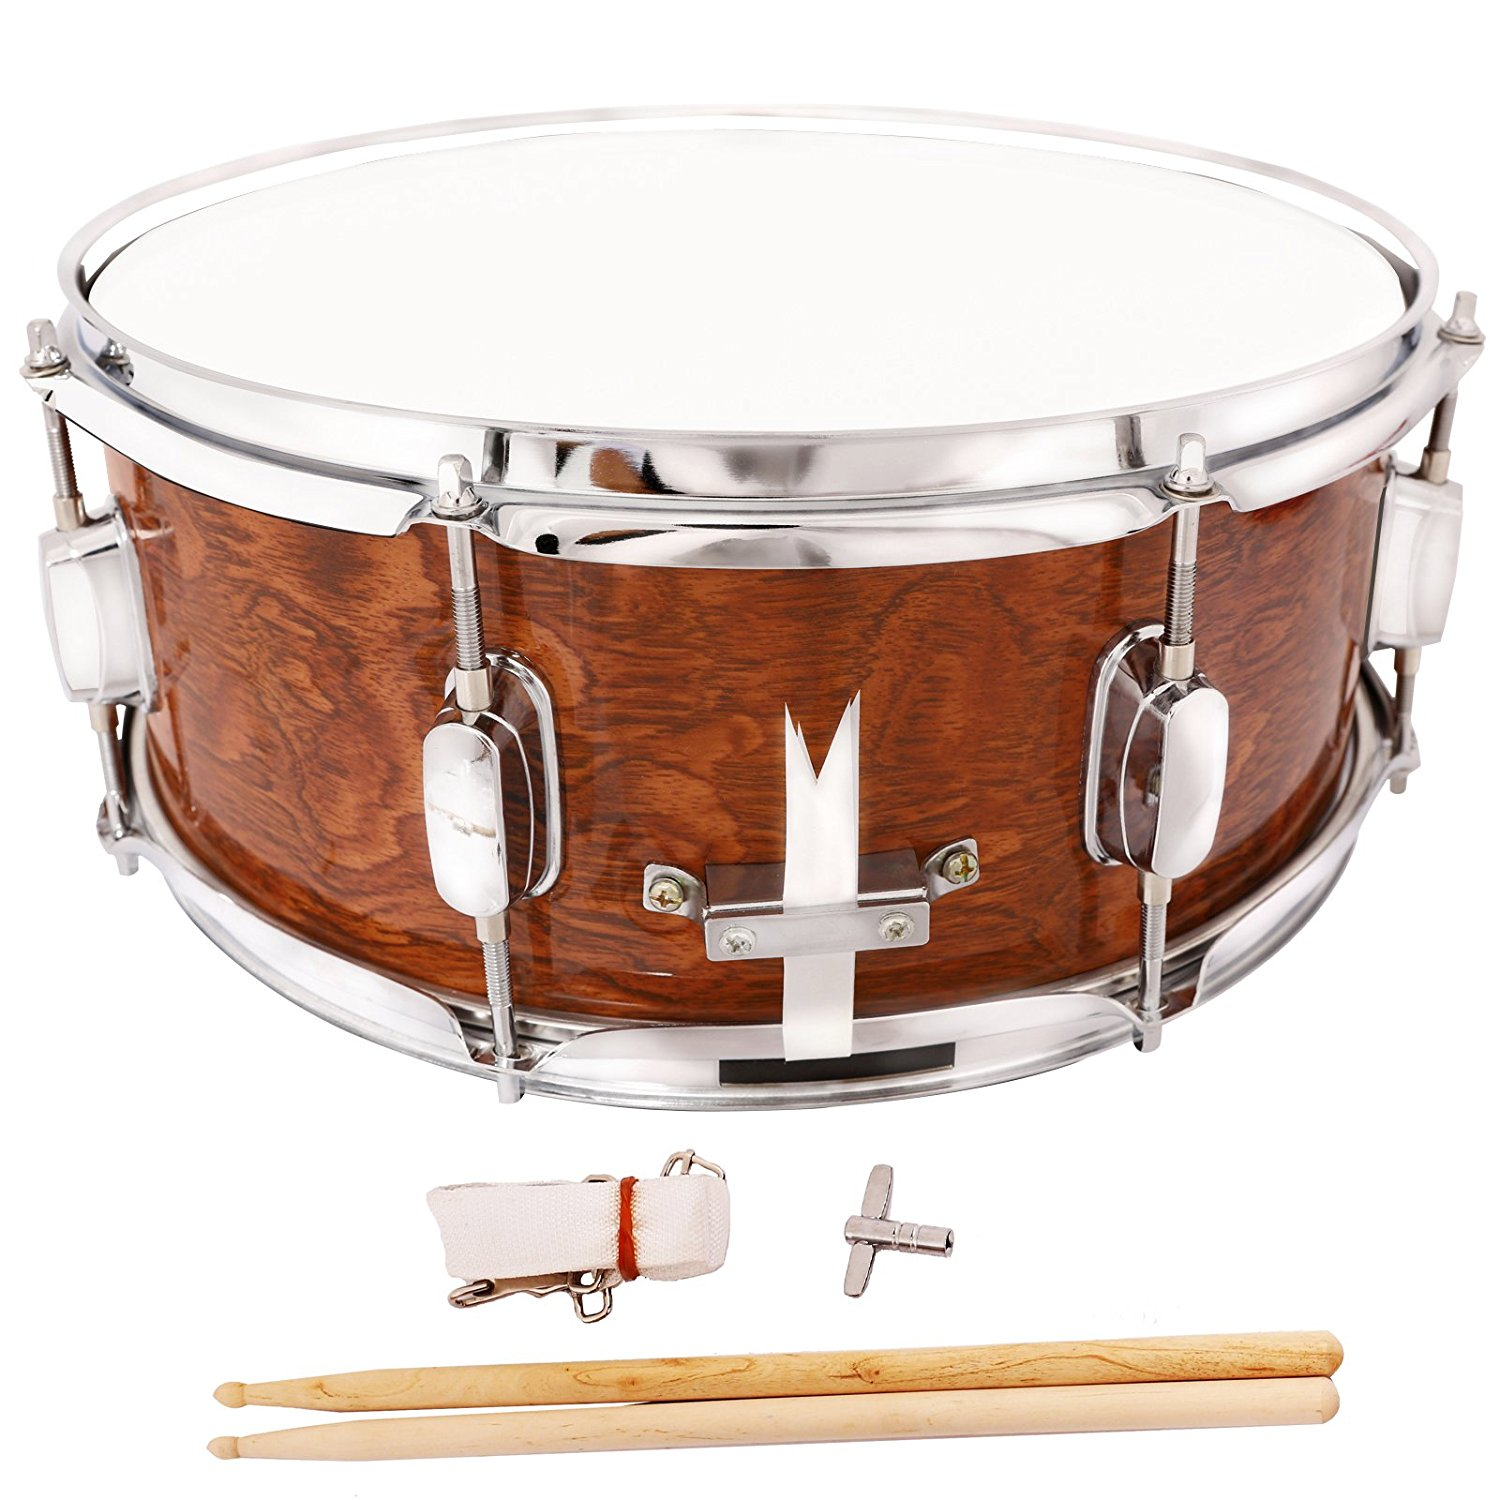 Marching Snare Drum Dark Wood Shell Percussion Poplar 14x5.5 Inch by